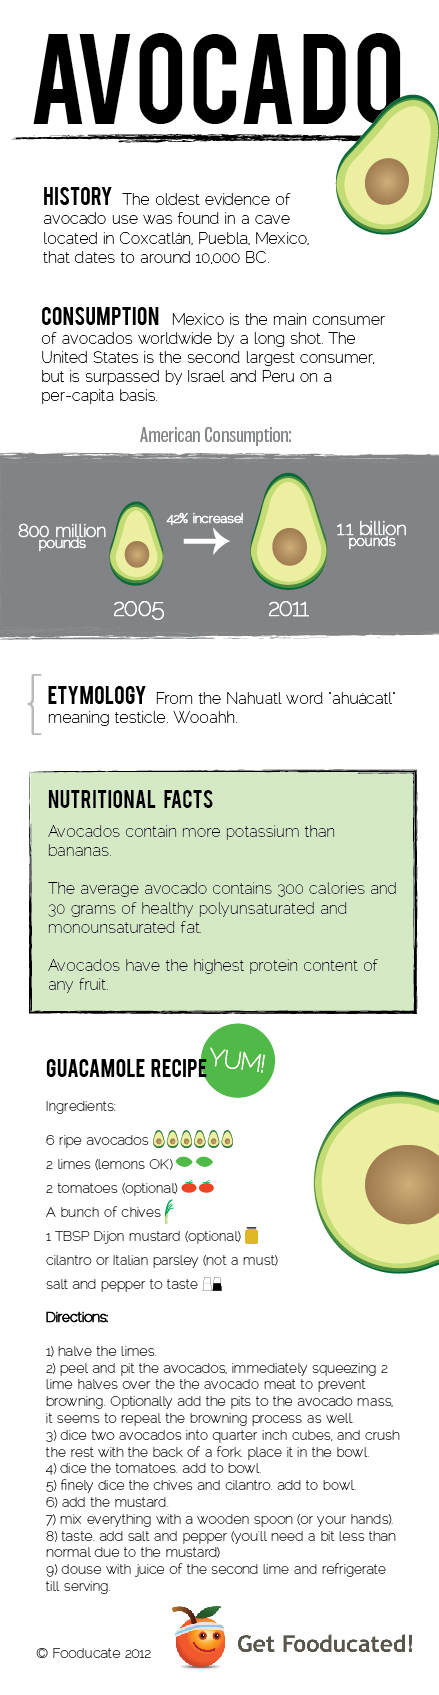 Avocado Love: Infographic + Recipe